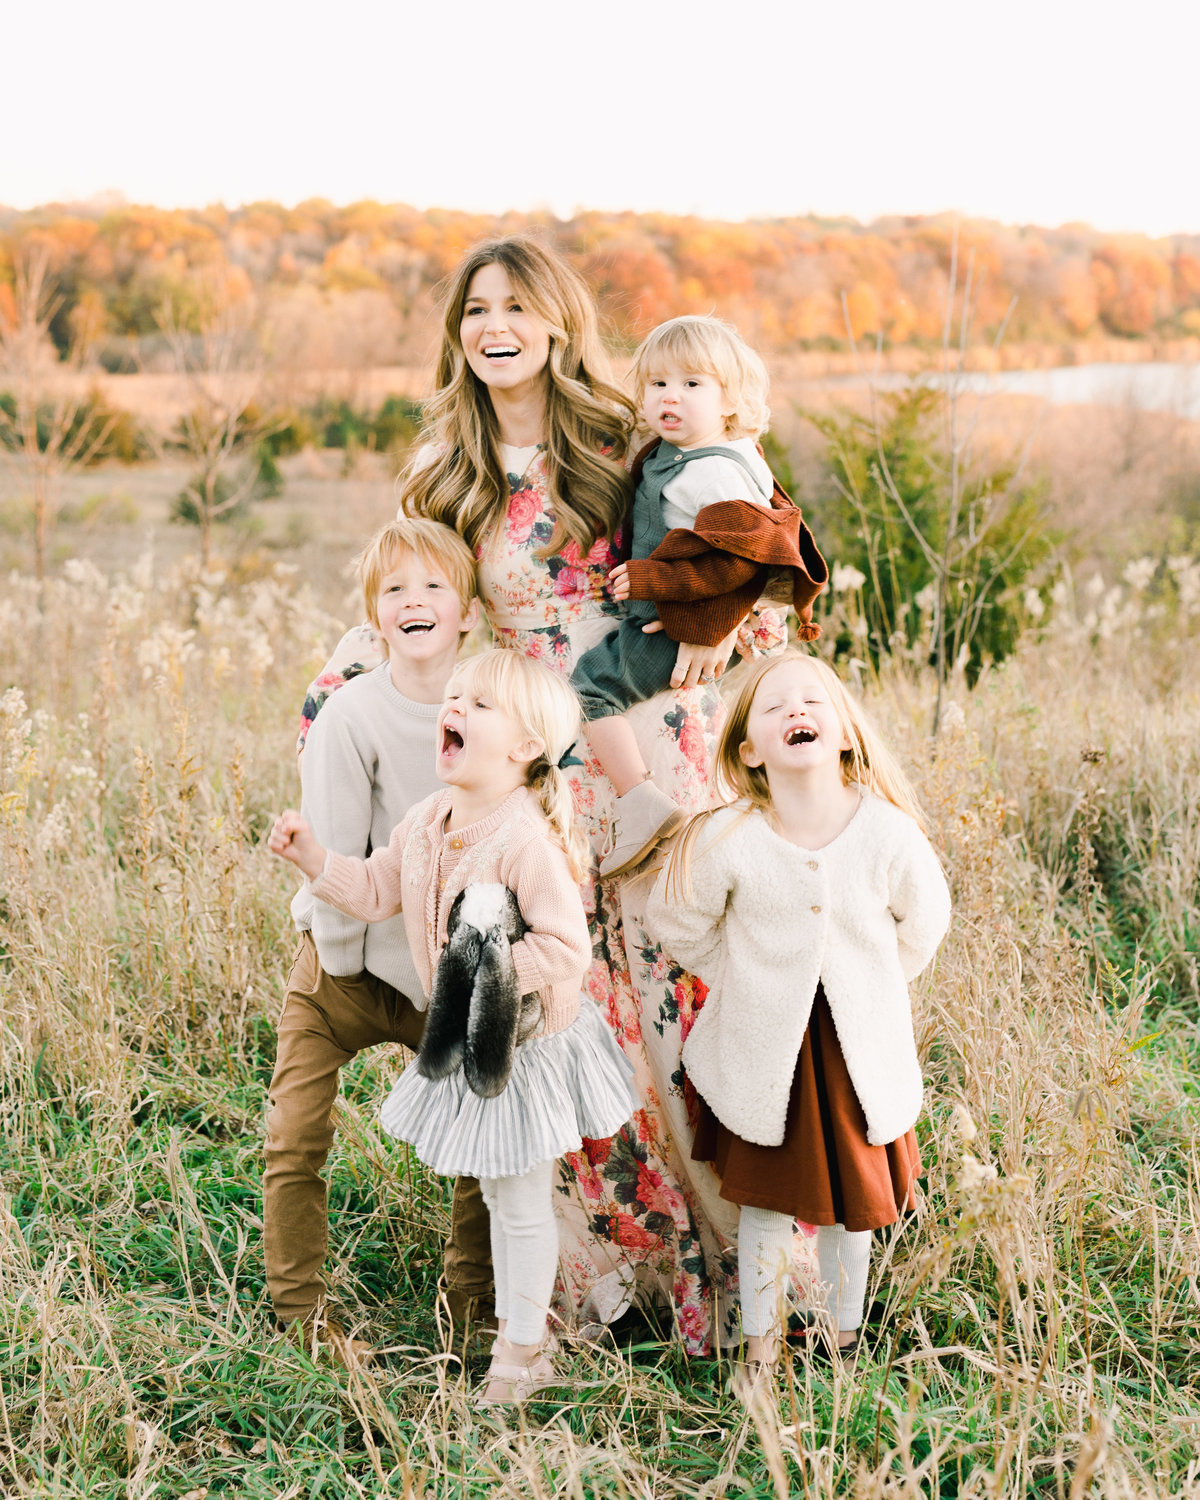 Colquitt-Family-Photos-MaritWilliamsPhotography-fall2019-66